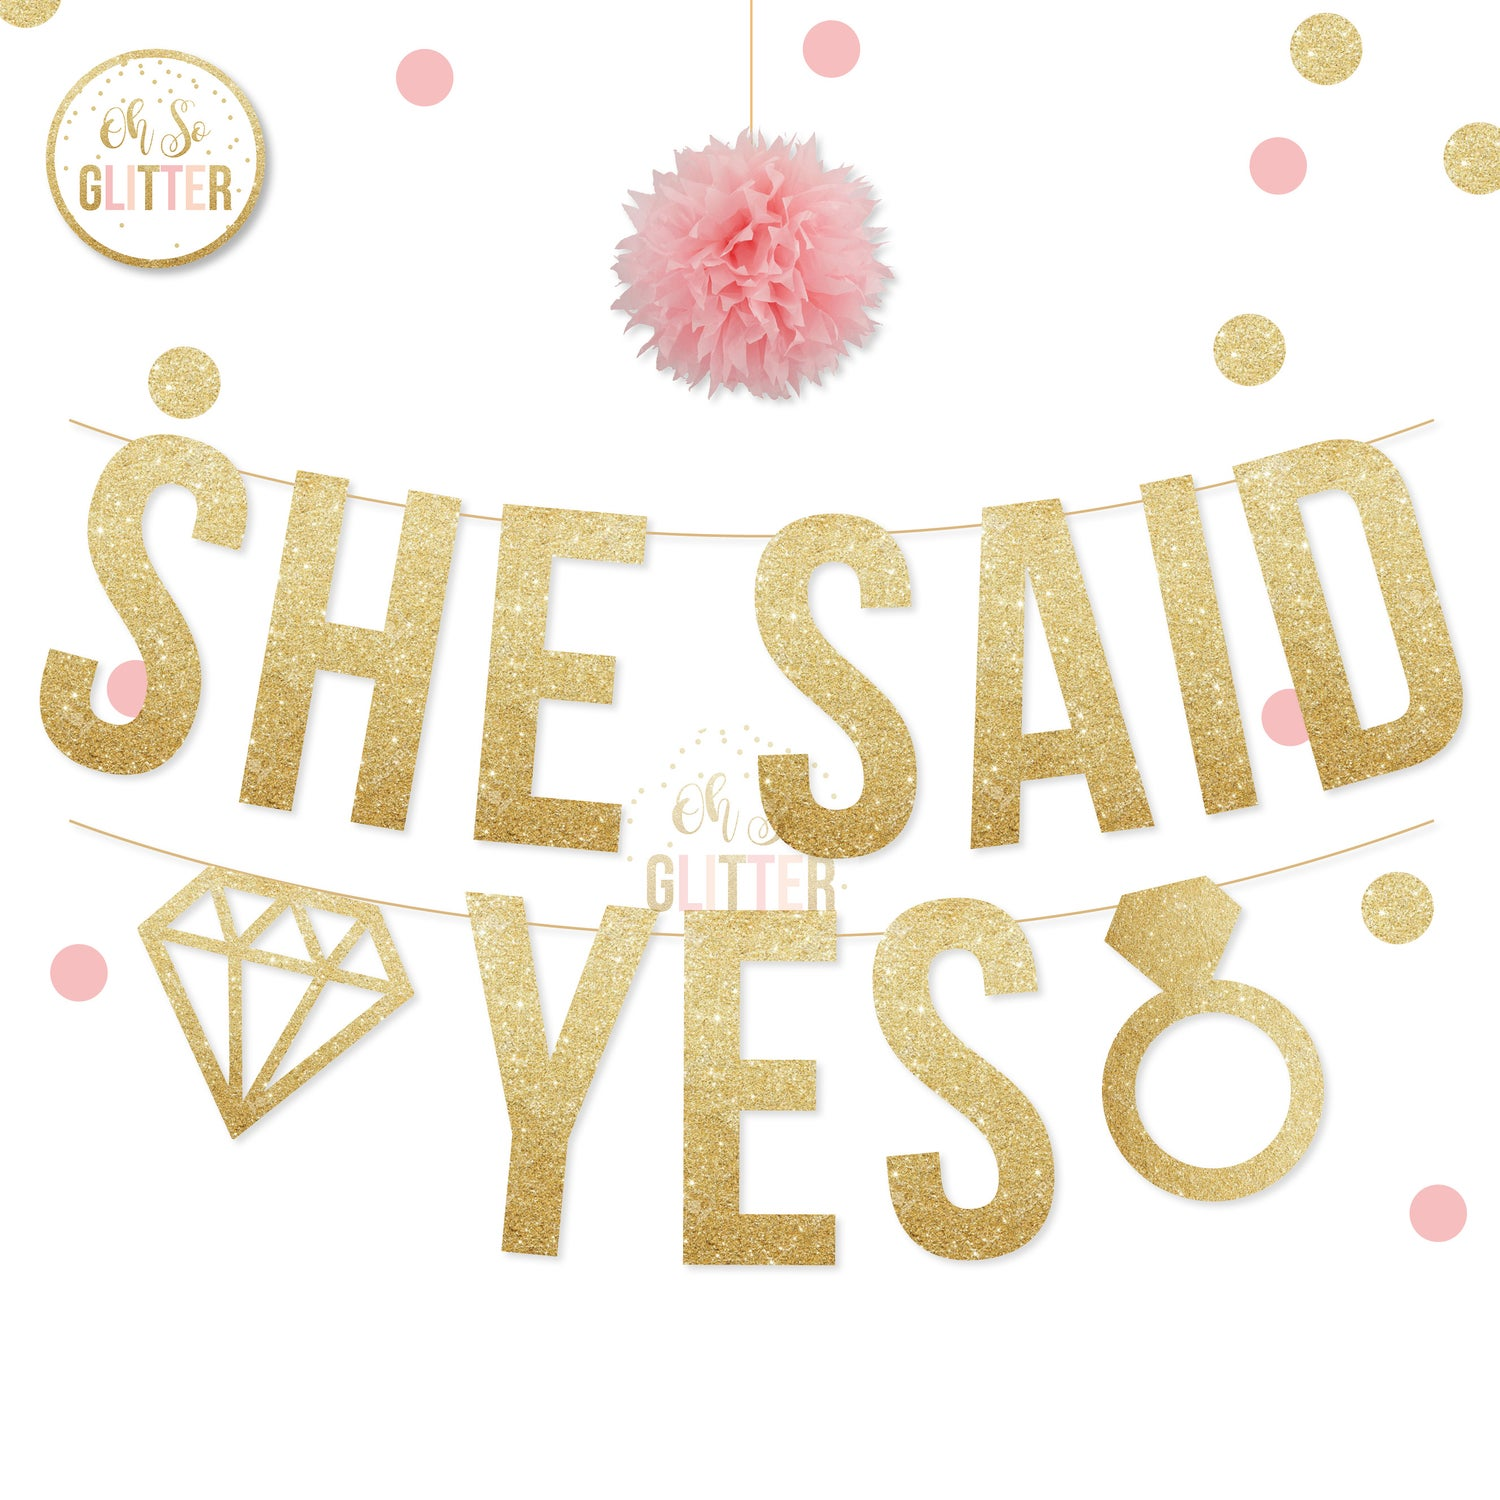 Image of She said YES glitter banner/garland